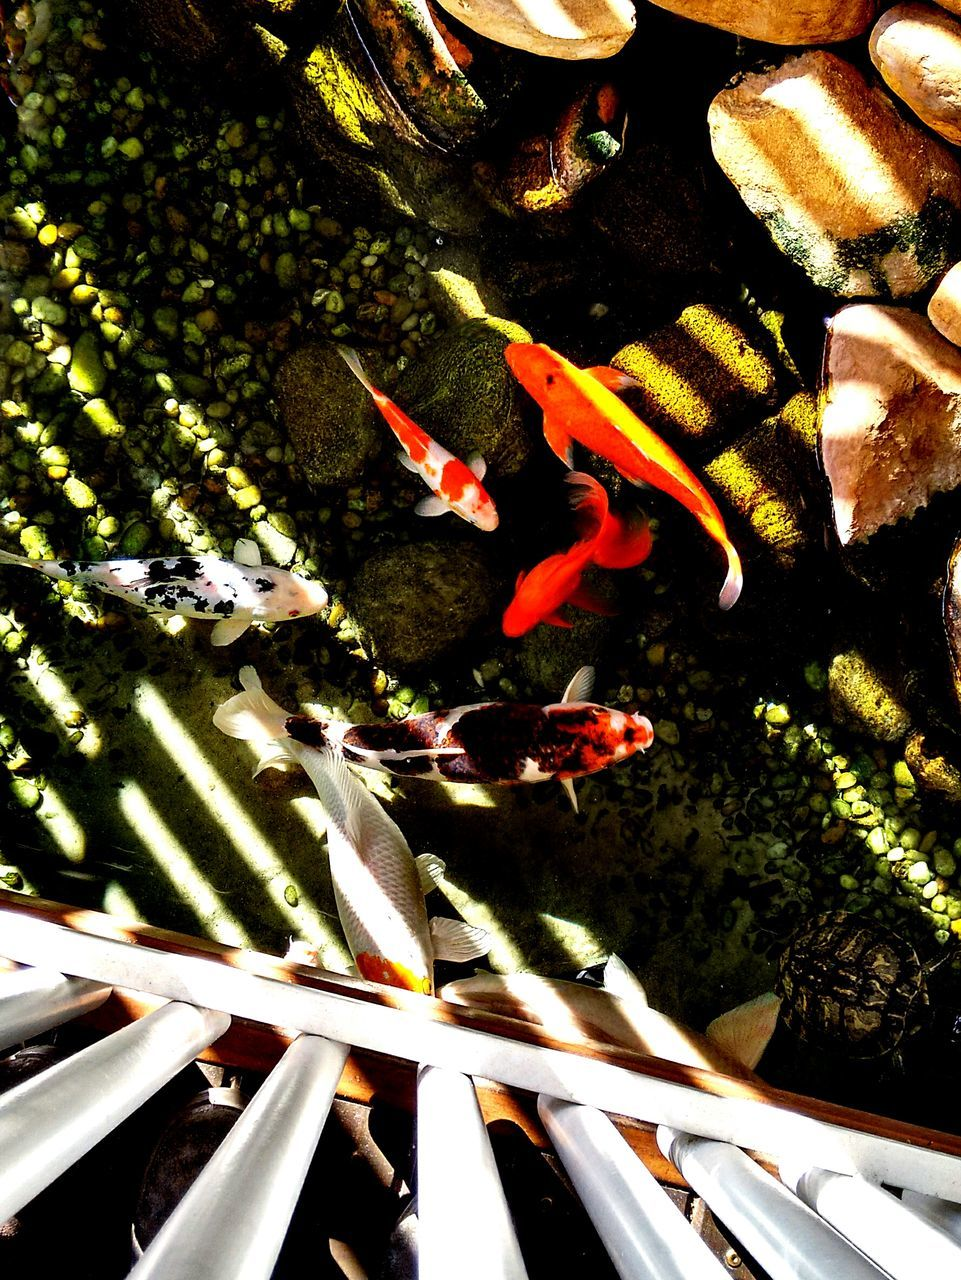 animal themes, high angle view, fish, no people, indoors, animals in the wild, sea life, close-up, swimming, nature, carp, water, large group of animals, day